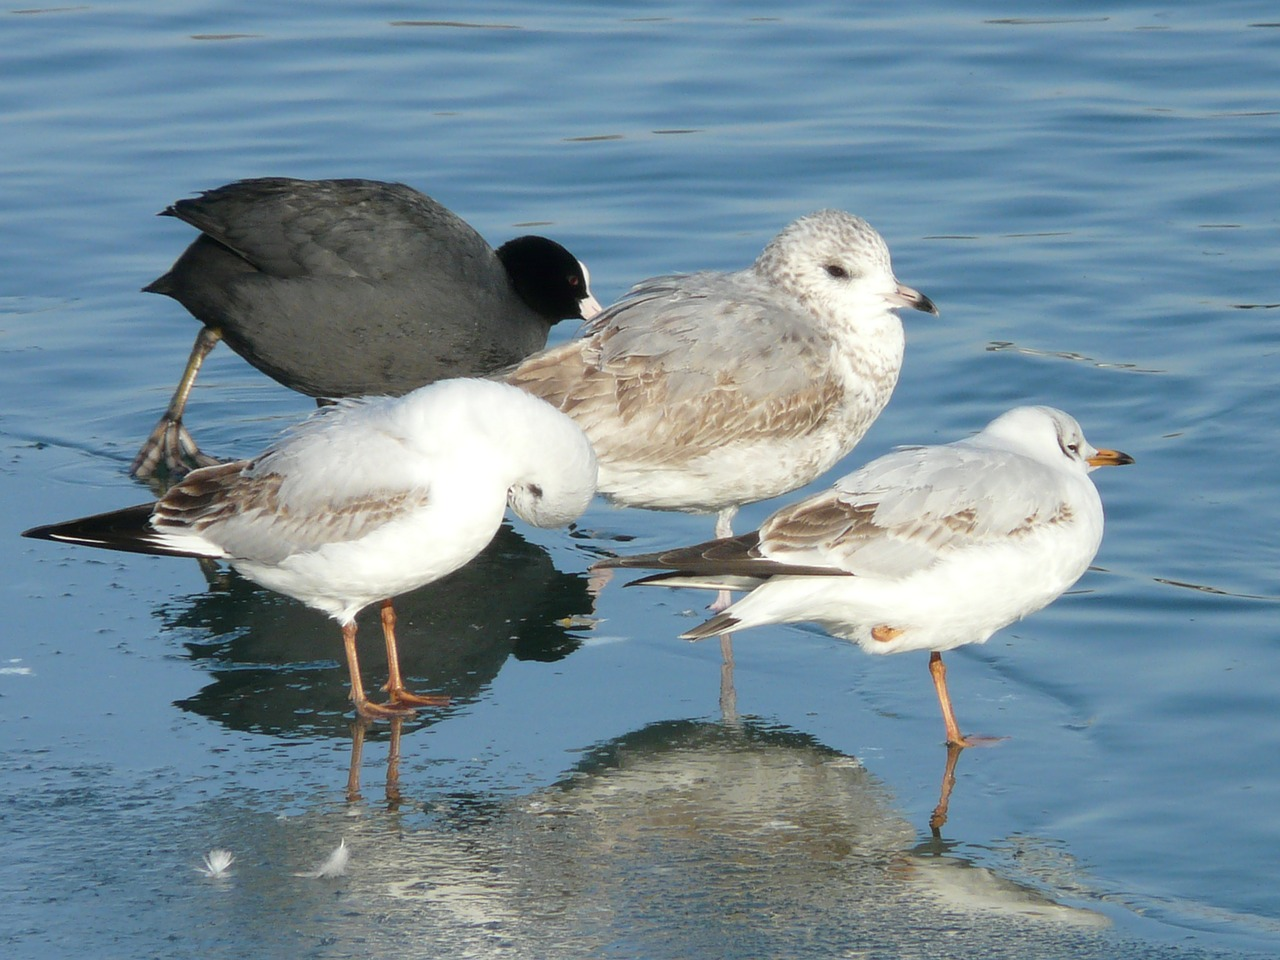 gulls,bird,animal,creature,cold,stand,one,ice,winter,coot,outsider,free pictures, free photos, free images, royalty free, free illustrations, public domain